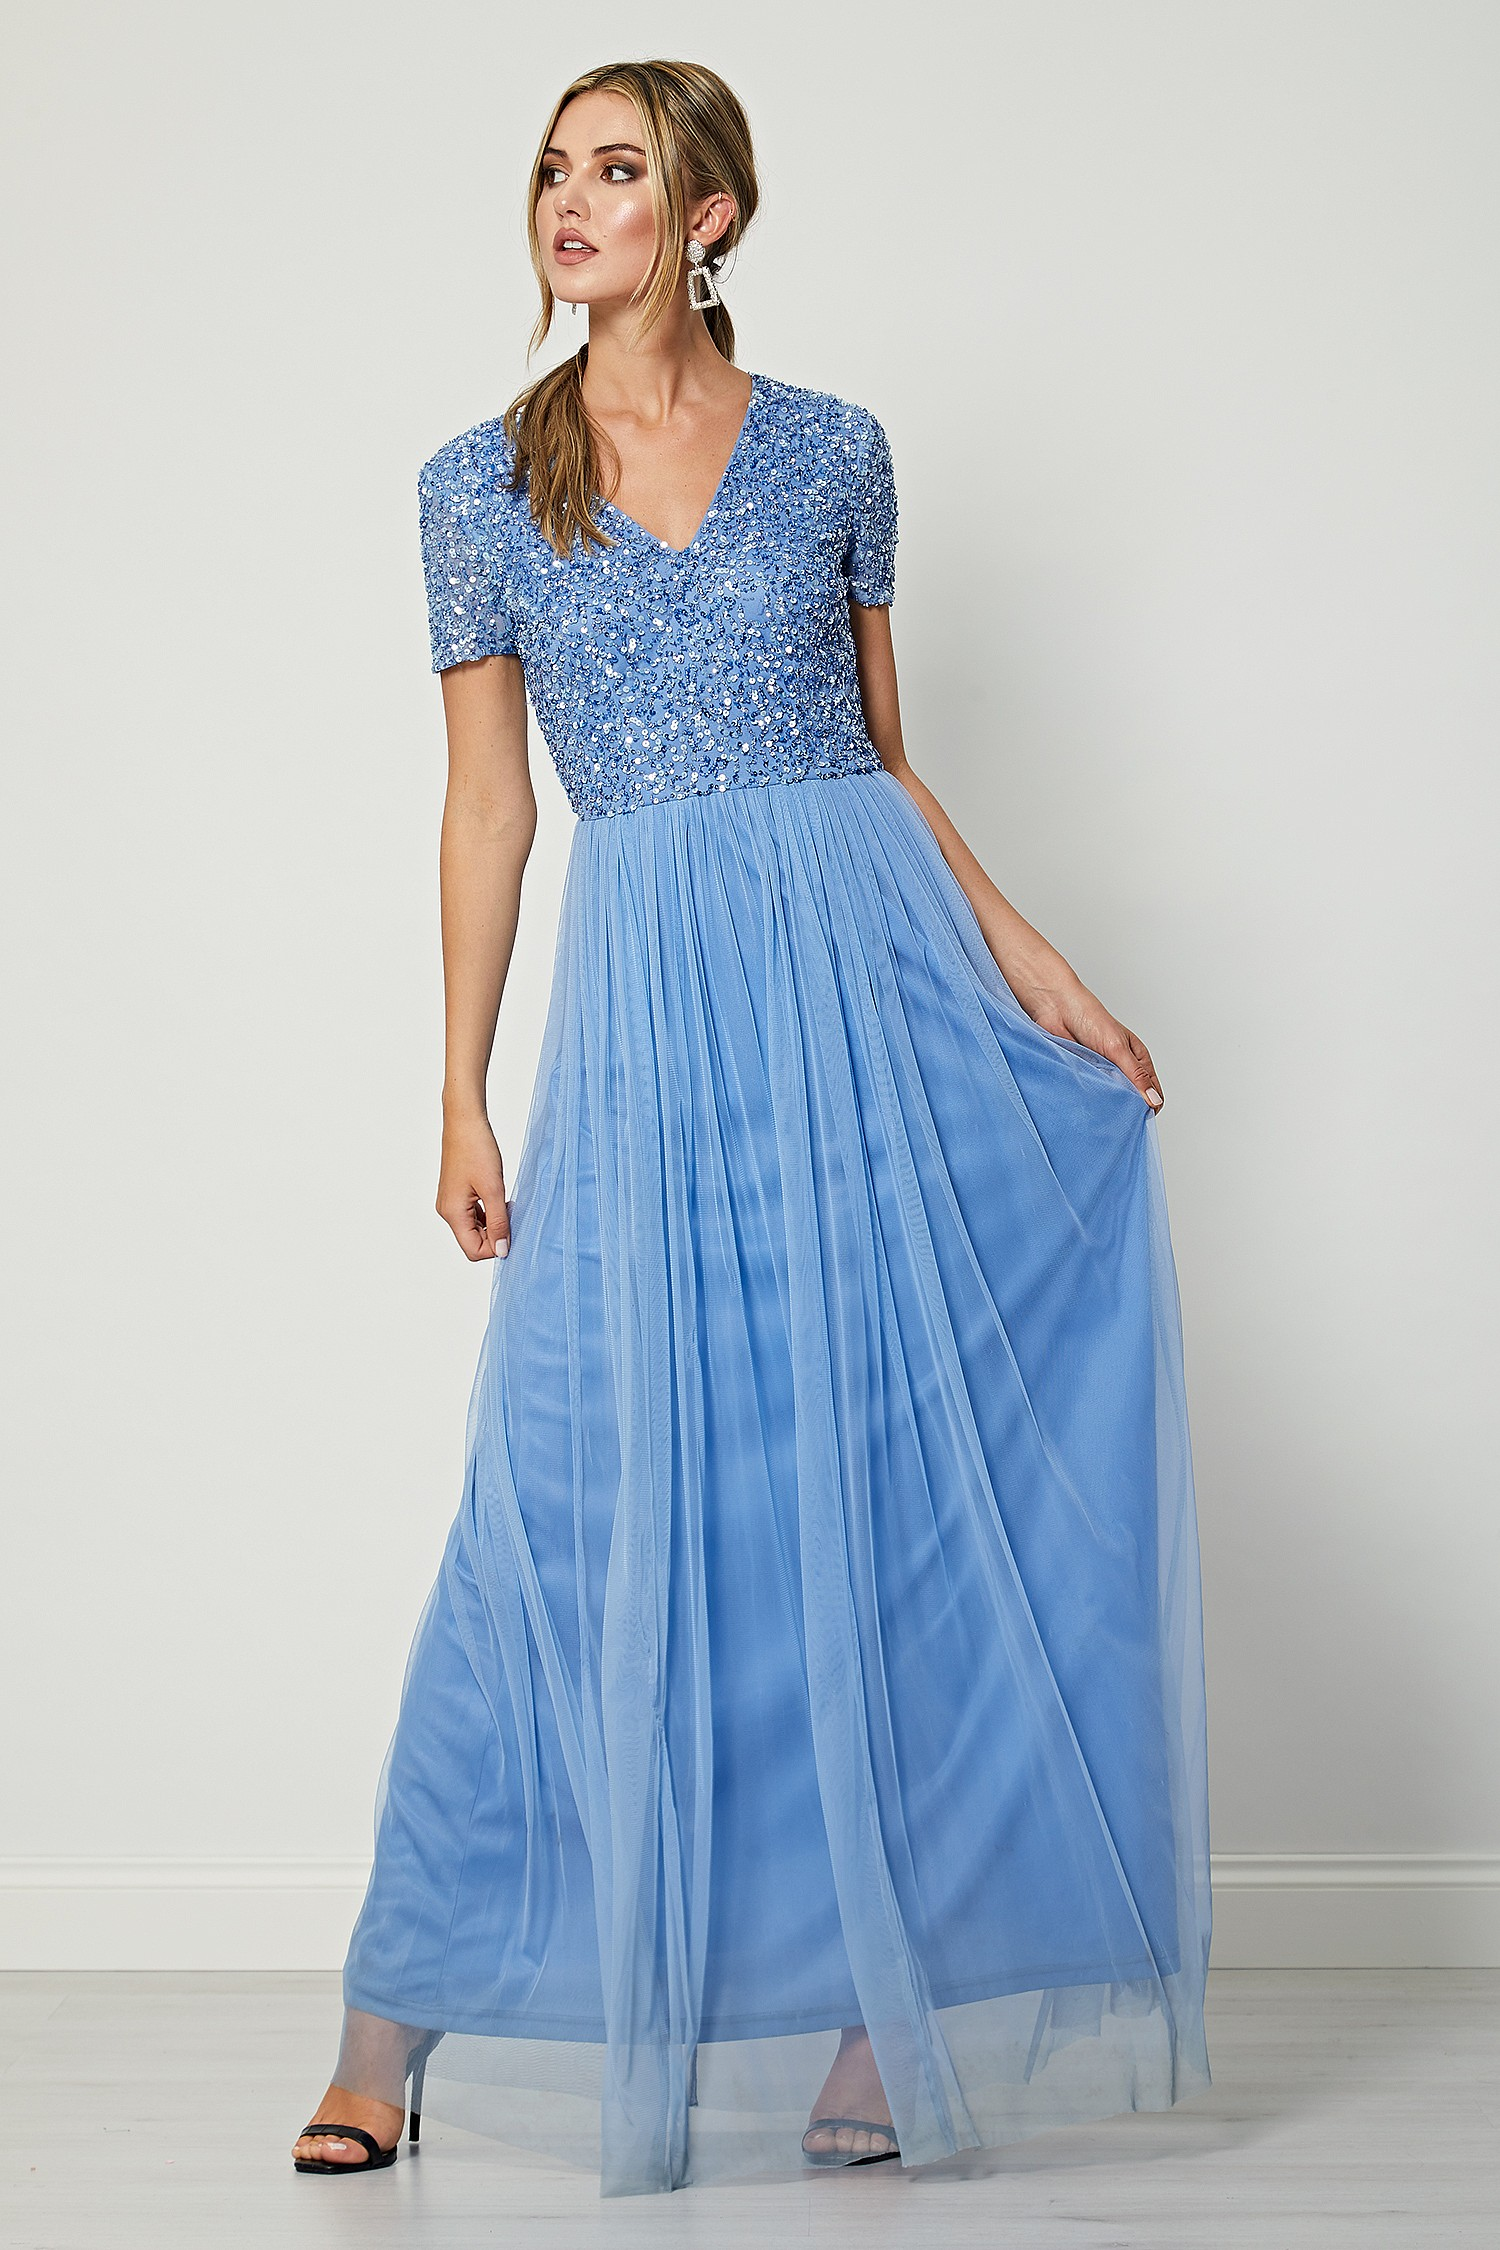 Image of Aquatic Blue Embellished Maxi Dress Apparel and Accessories - Clothing - Dresses female ANGELEYE Collection 5055452012977